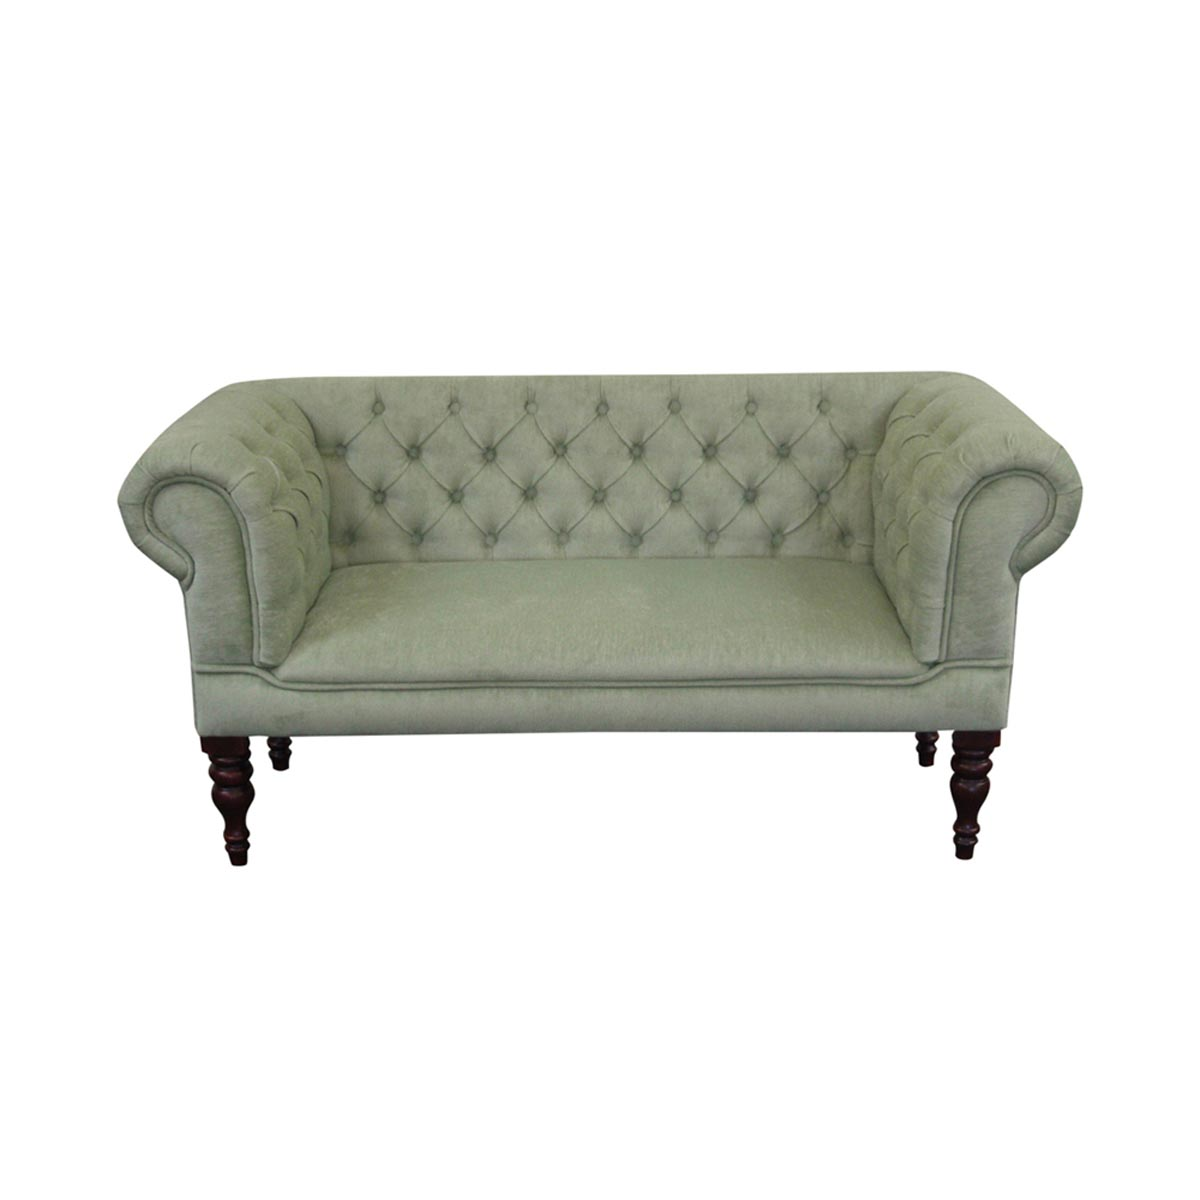 Sage slipper sofa Slipper loveseat